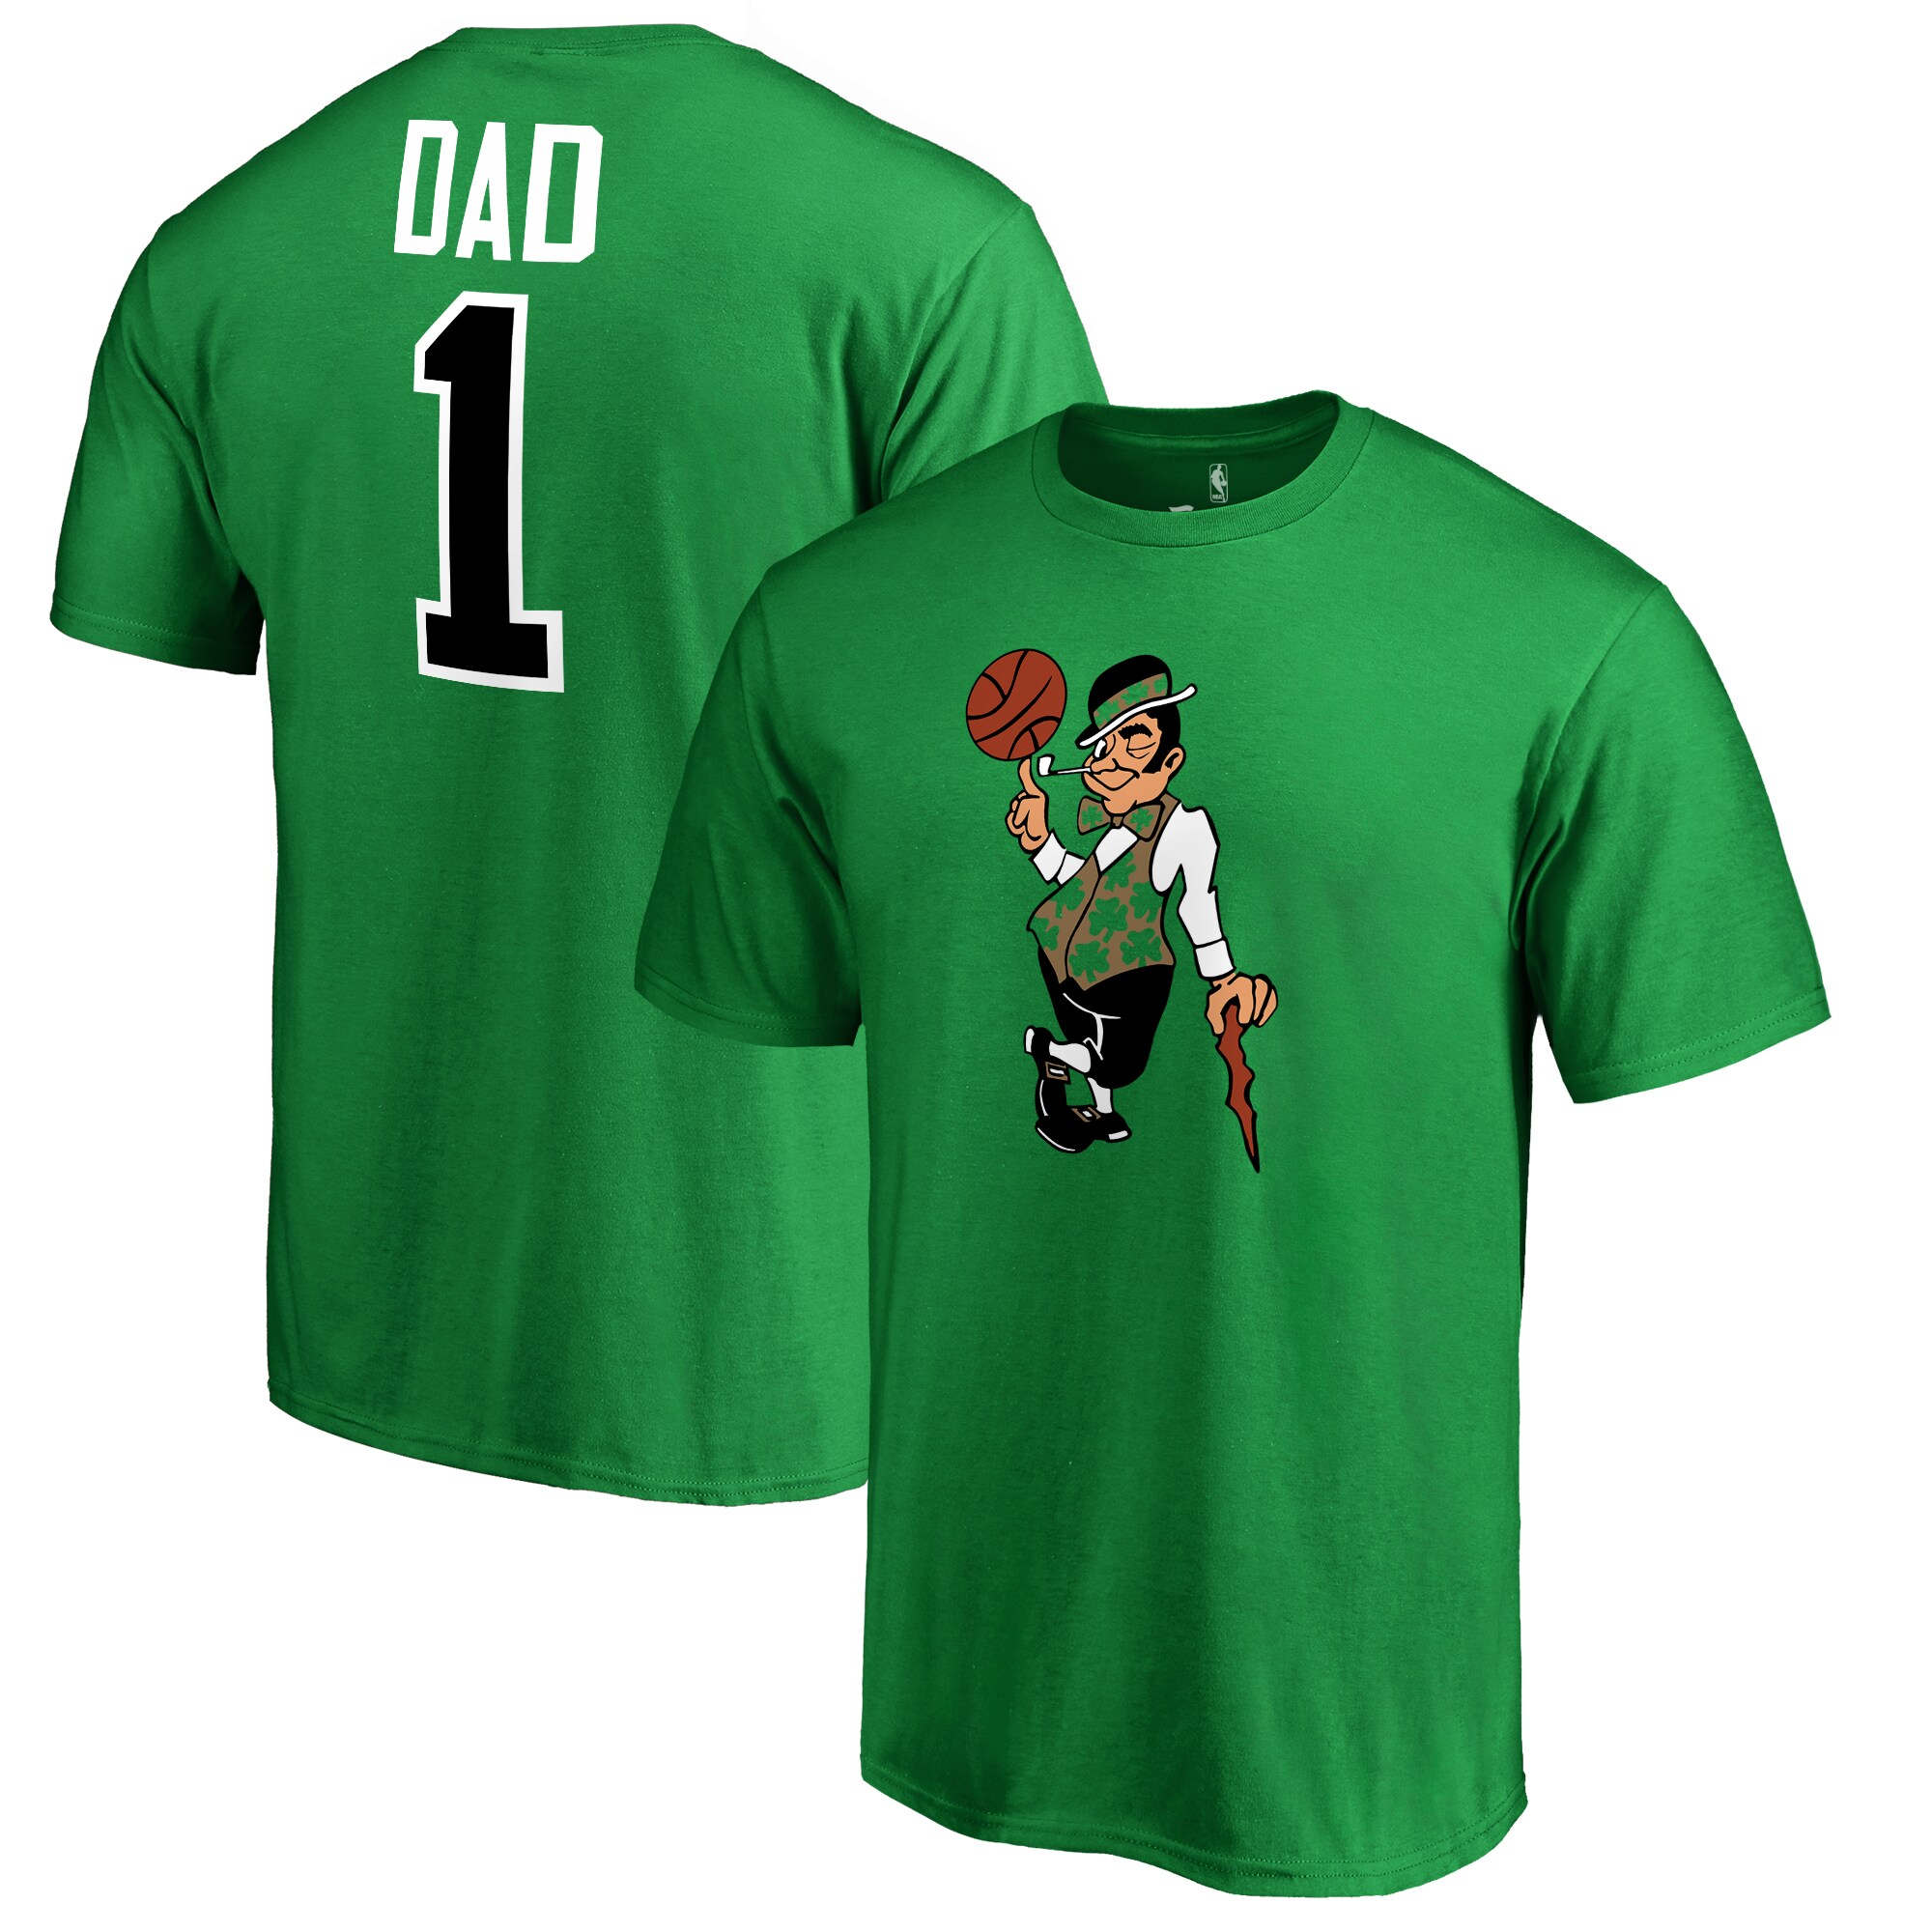 Boston Celtics #1 Dad T-Shirt - Kelly Green